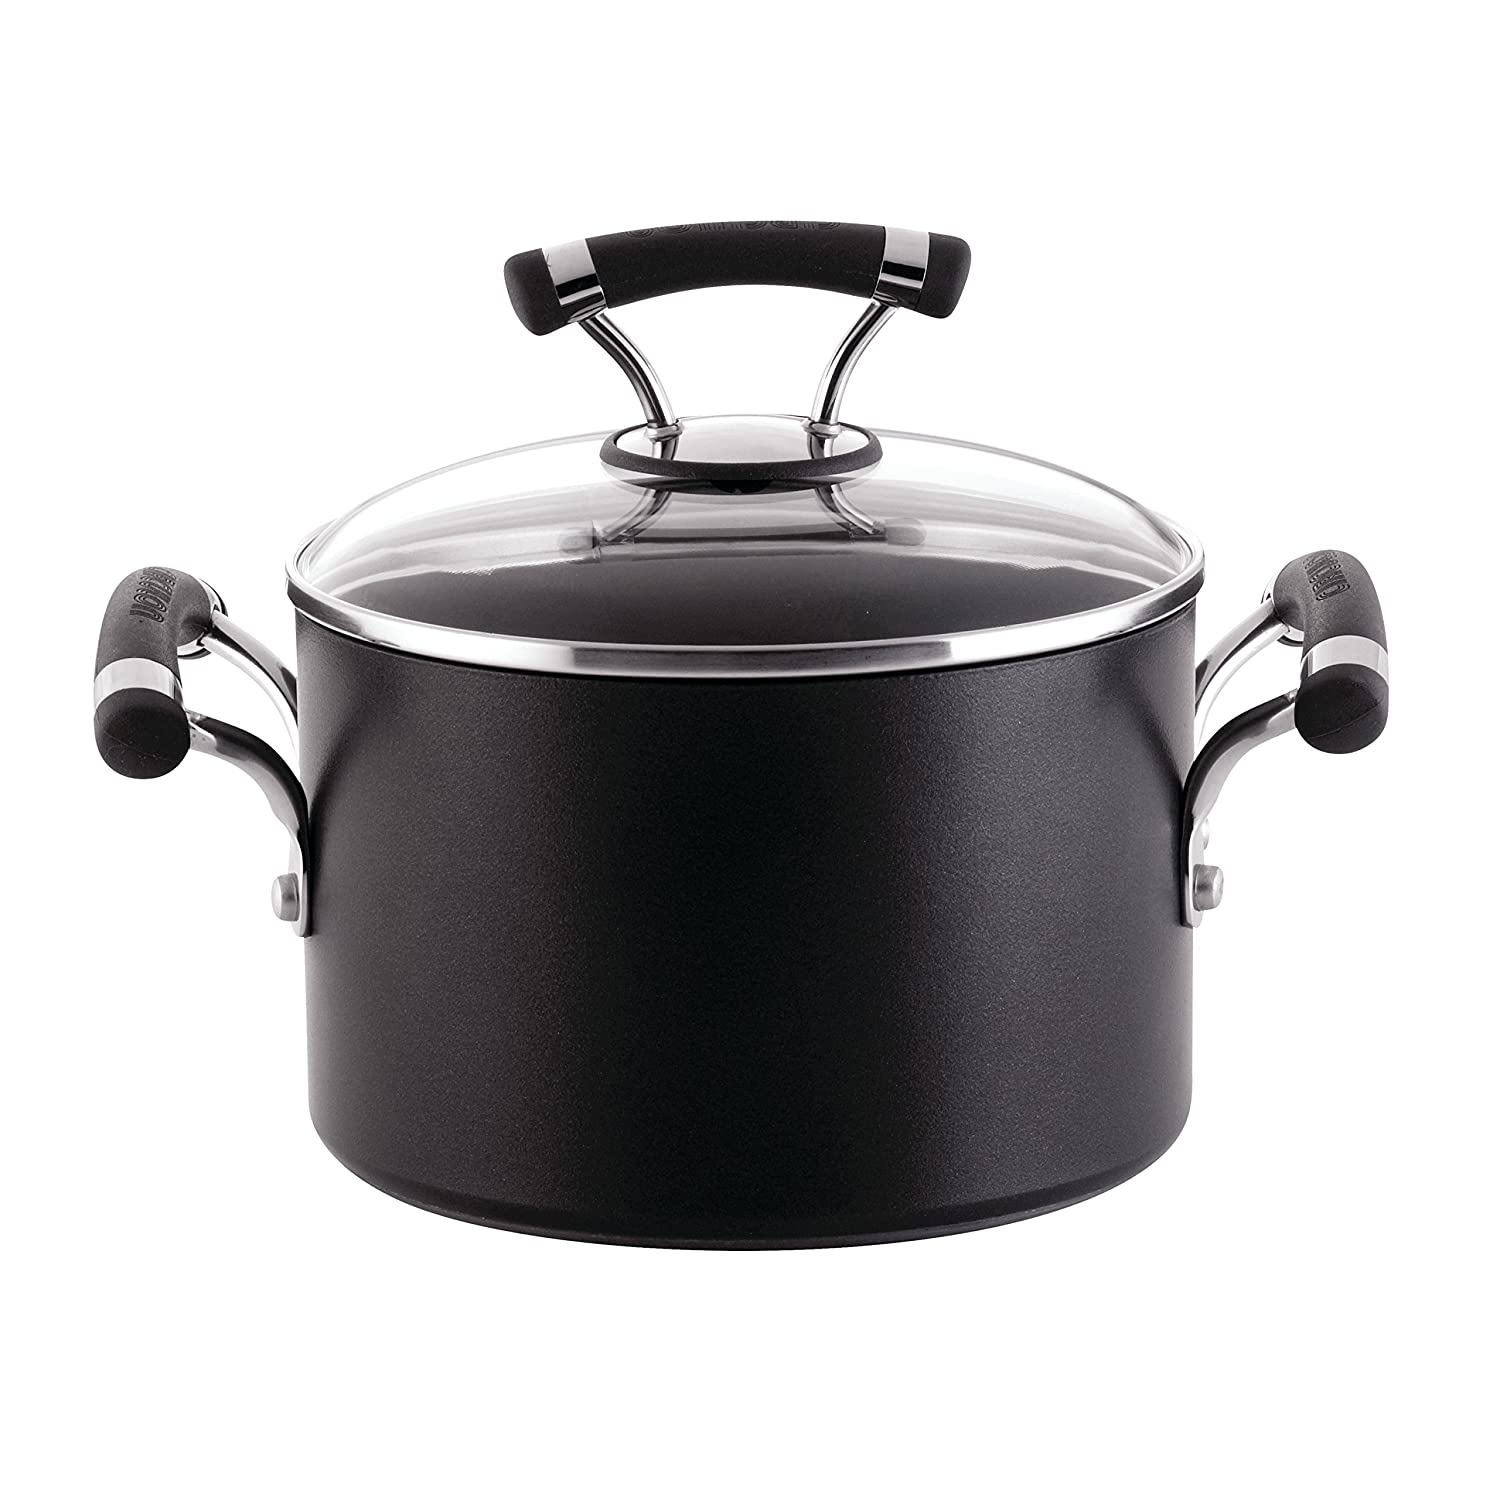 Circulon Contempo 3-Quart Covered Saucepot, Gray